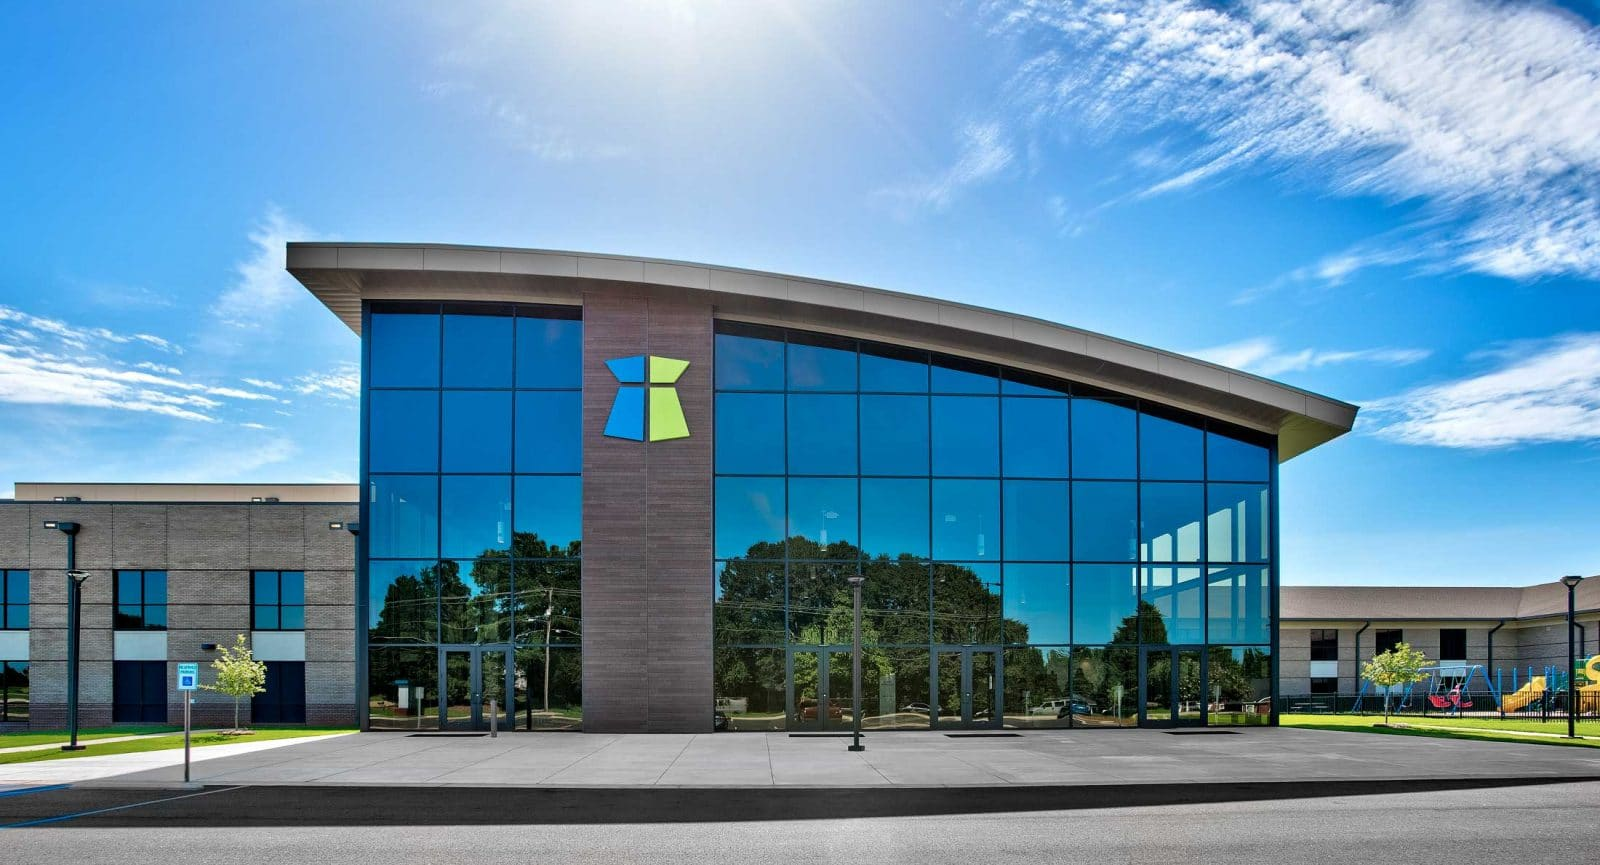 Anderson Mill Church - GlassFront Commercial Building Services by City Glass in Anderson, SC